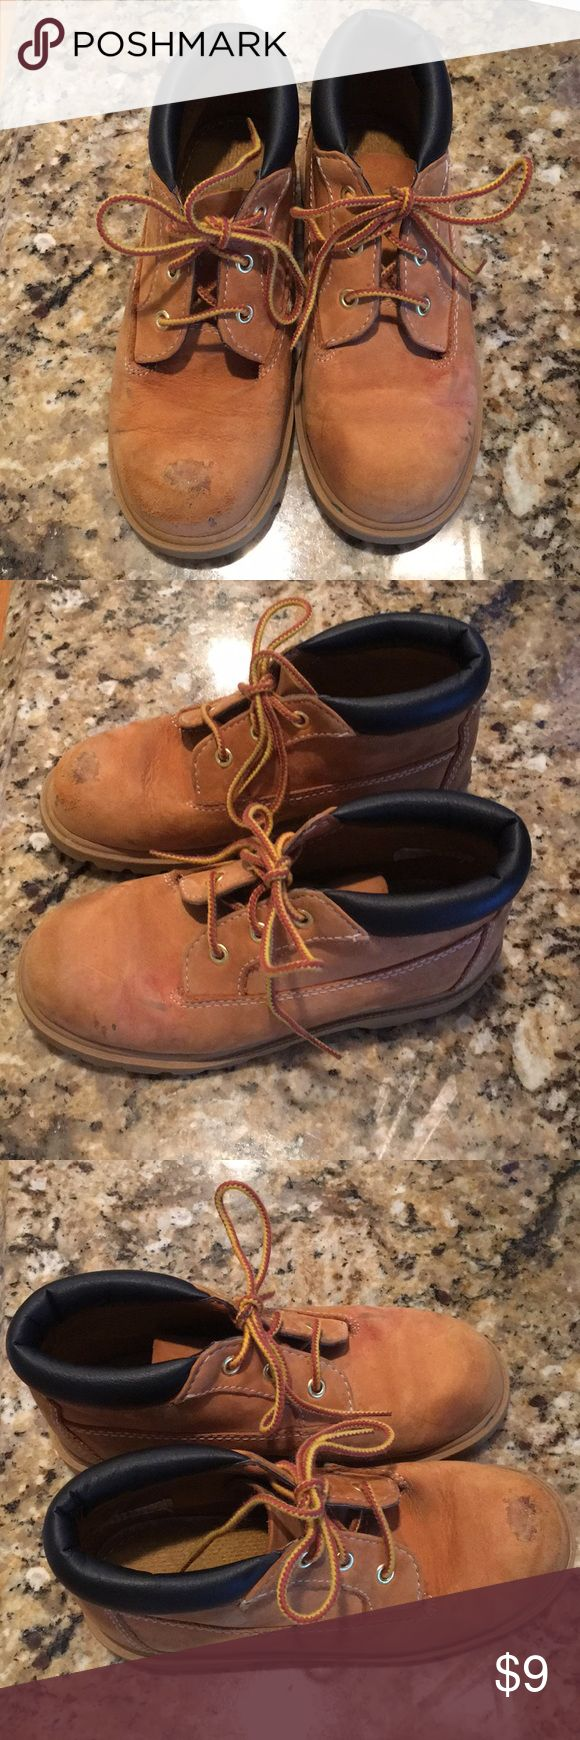 Boys Timberland boots Boys timberland boots chukka style - have definite wear which is why I have reduced price but are definitely still great for the cold weather Timberland Shoes Boots